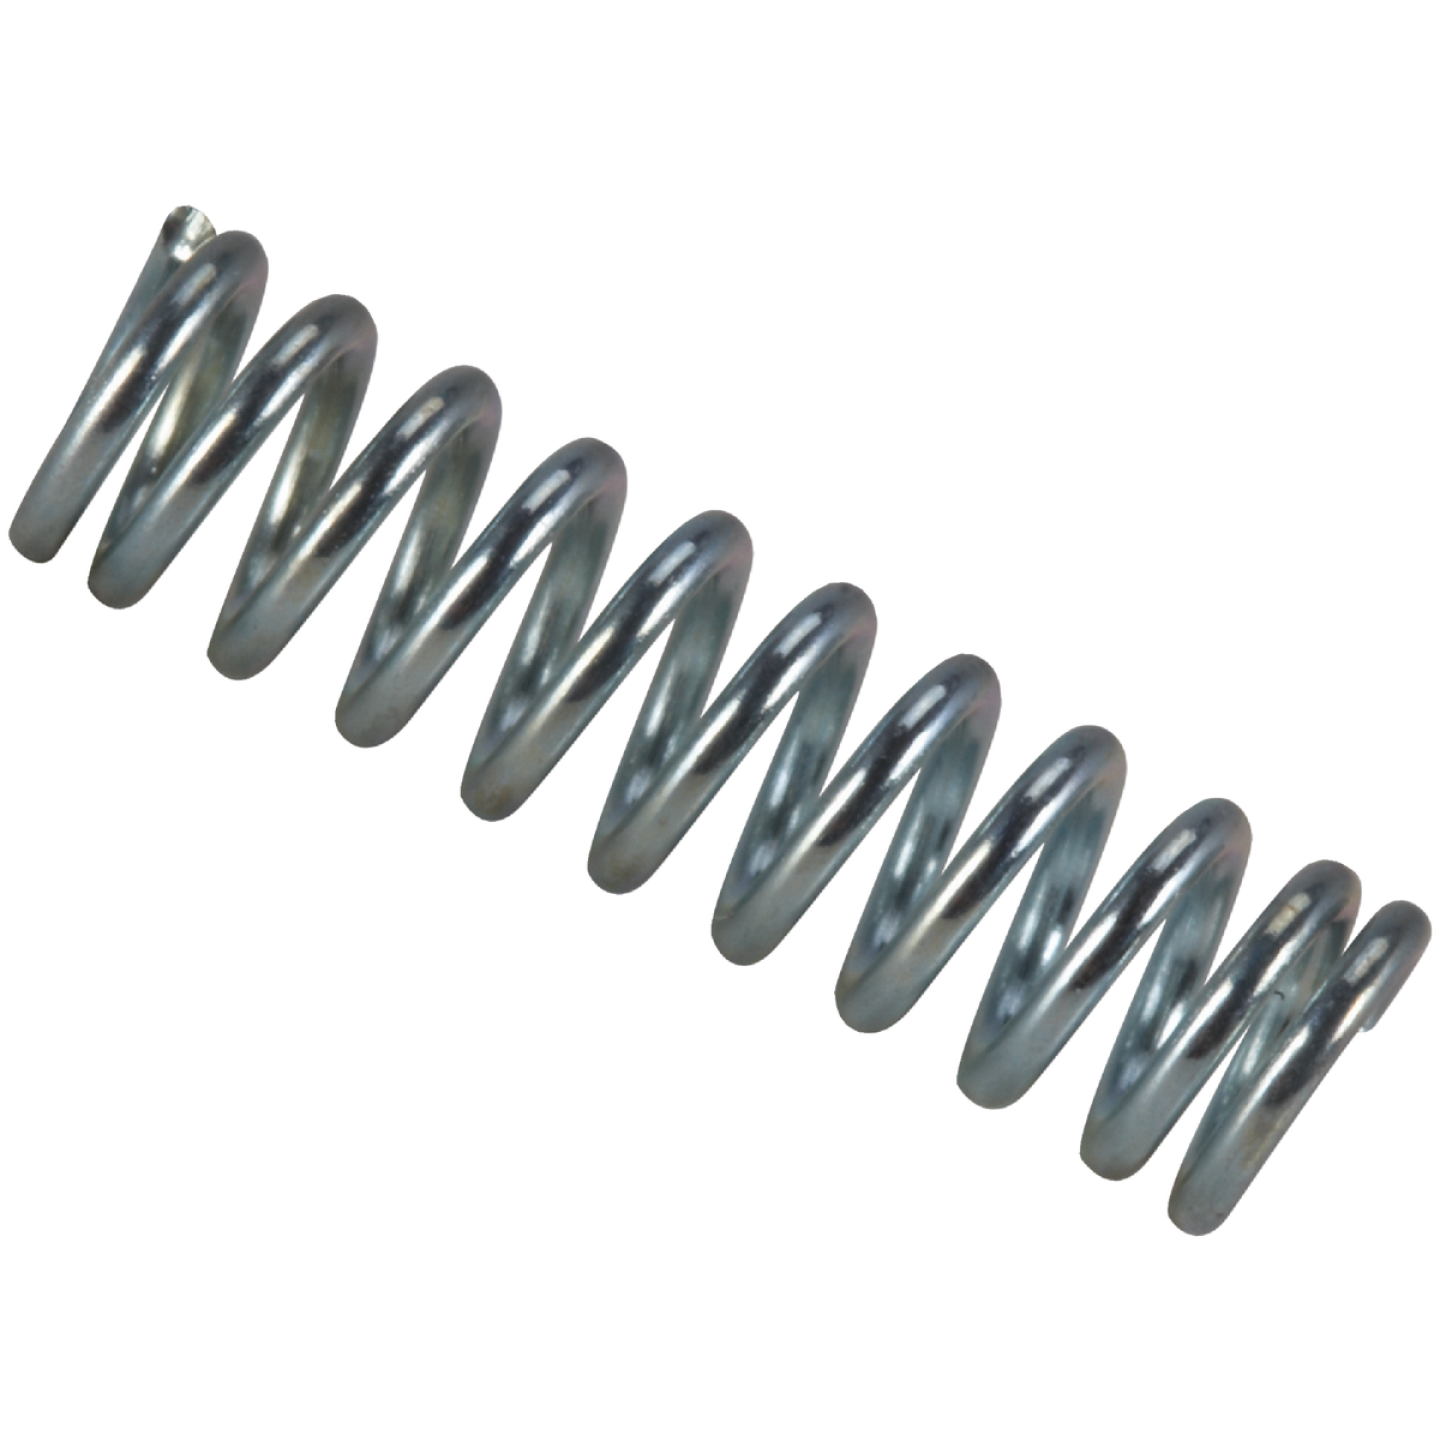 Century Spring 1-3/4 In. x 7/32 In. Compression Spring (4 Count) Image 1